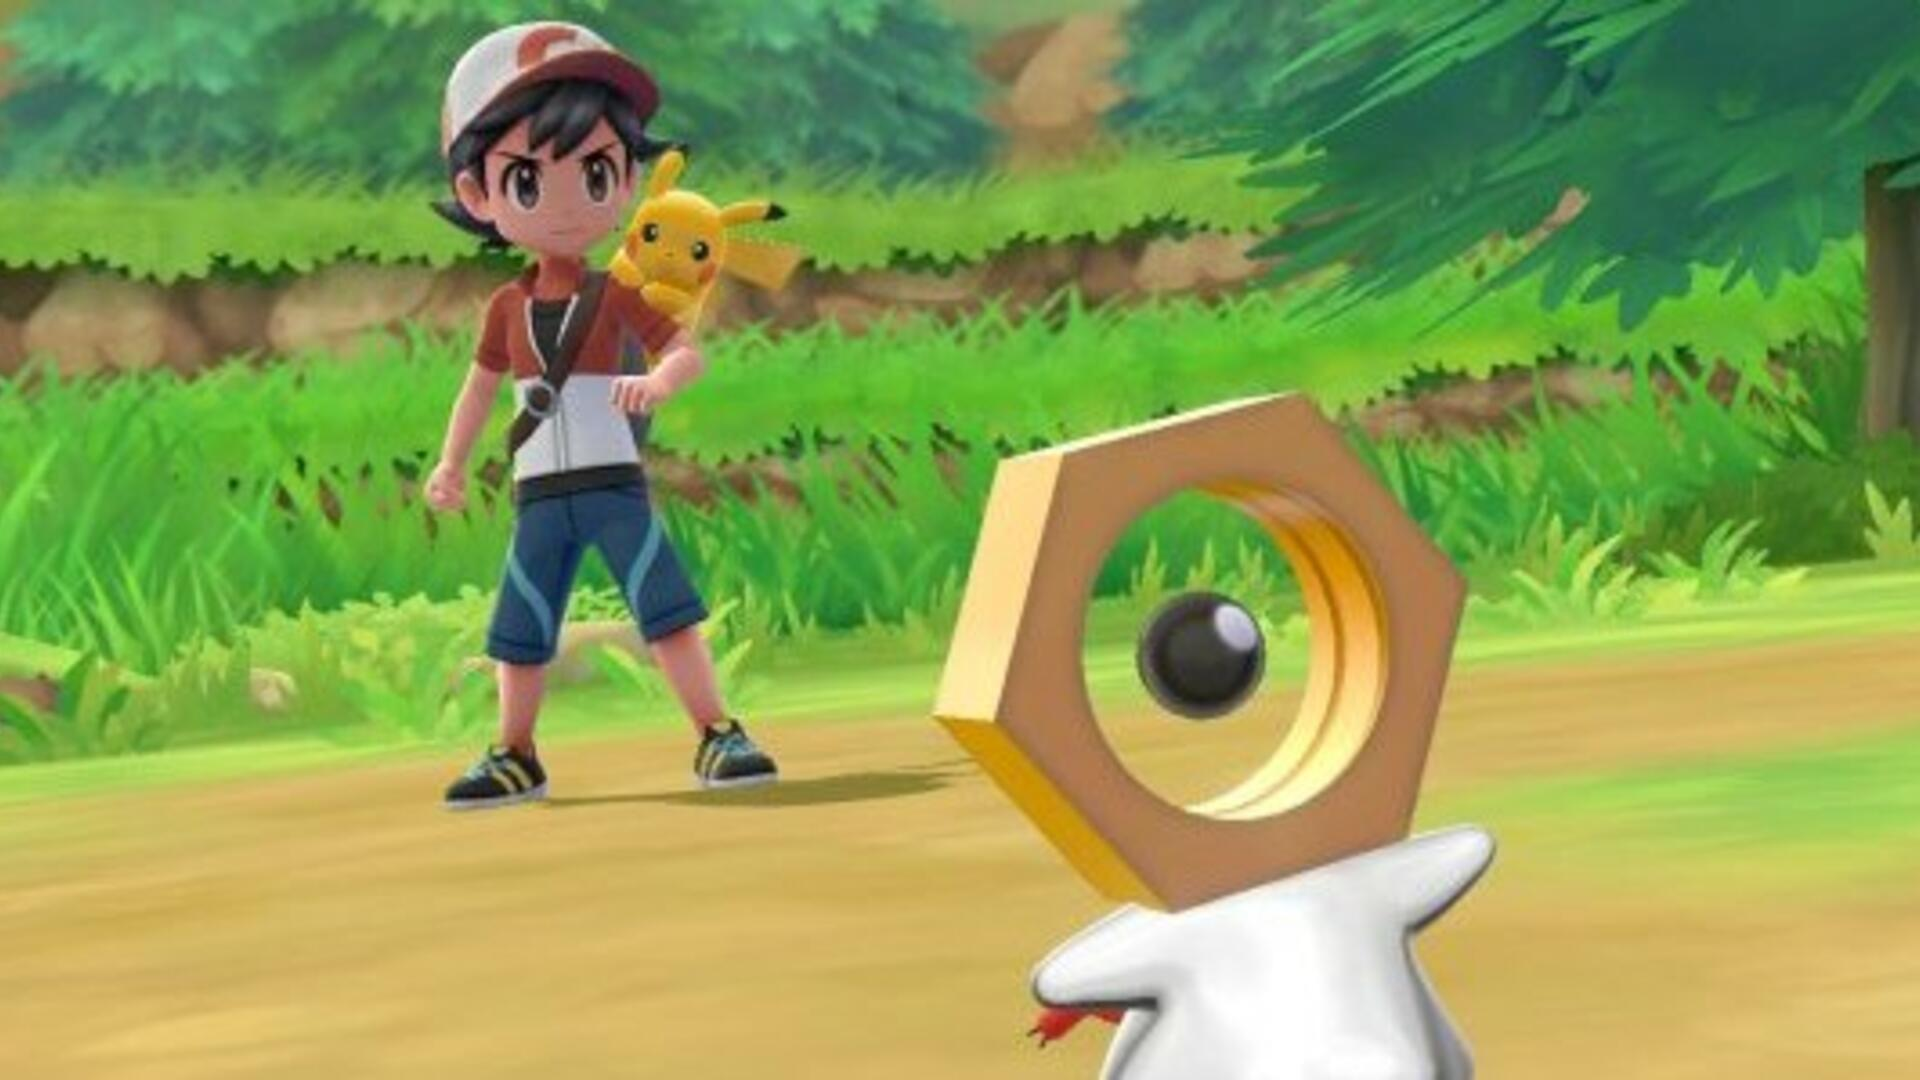 The Meltan Pokemon Go Reveal Poses More Questions Than Answers